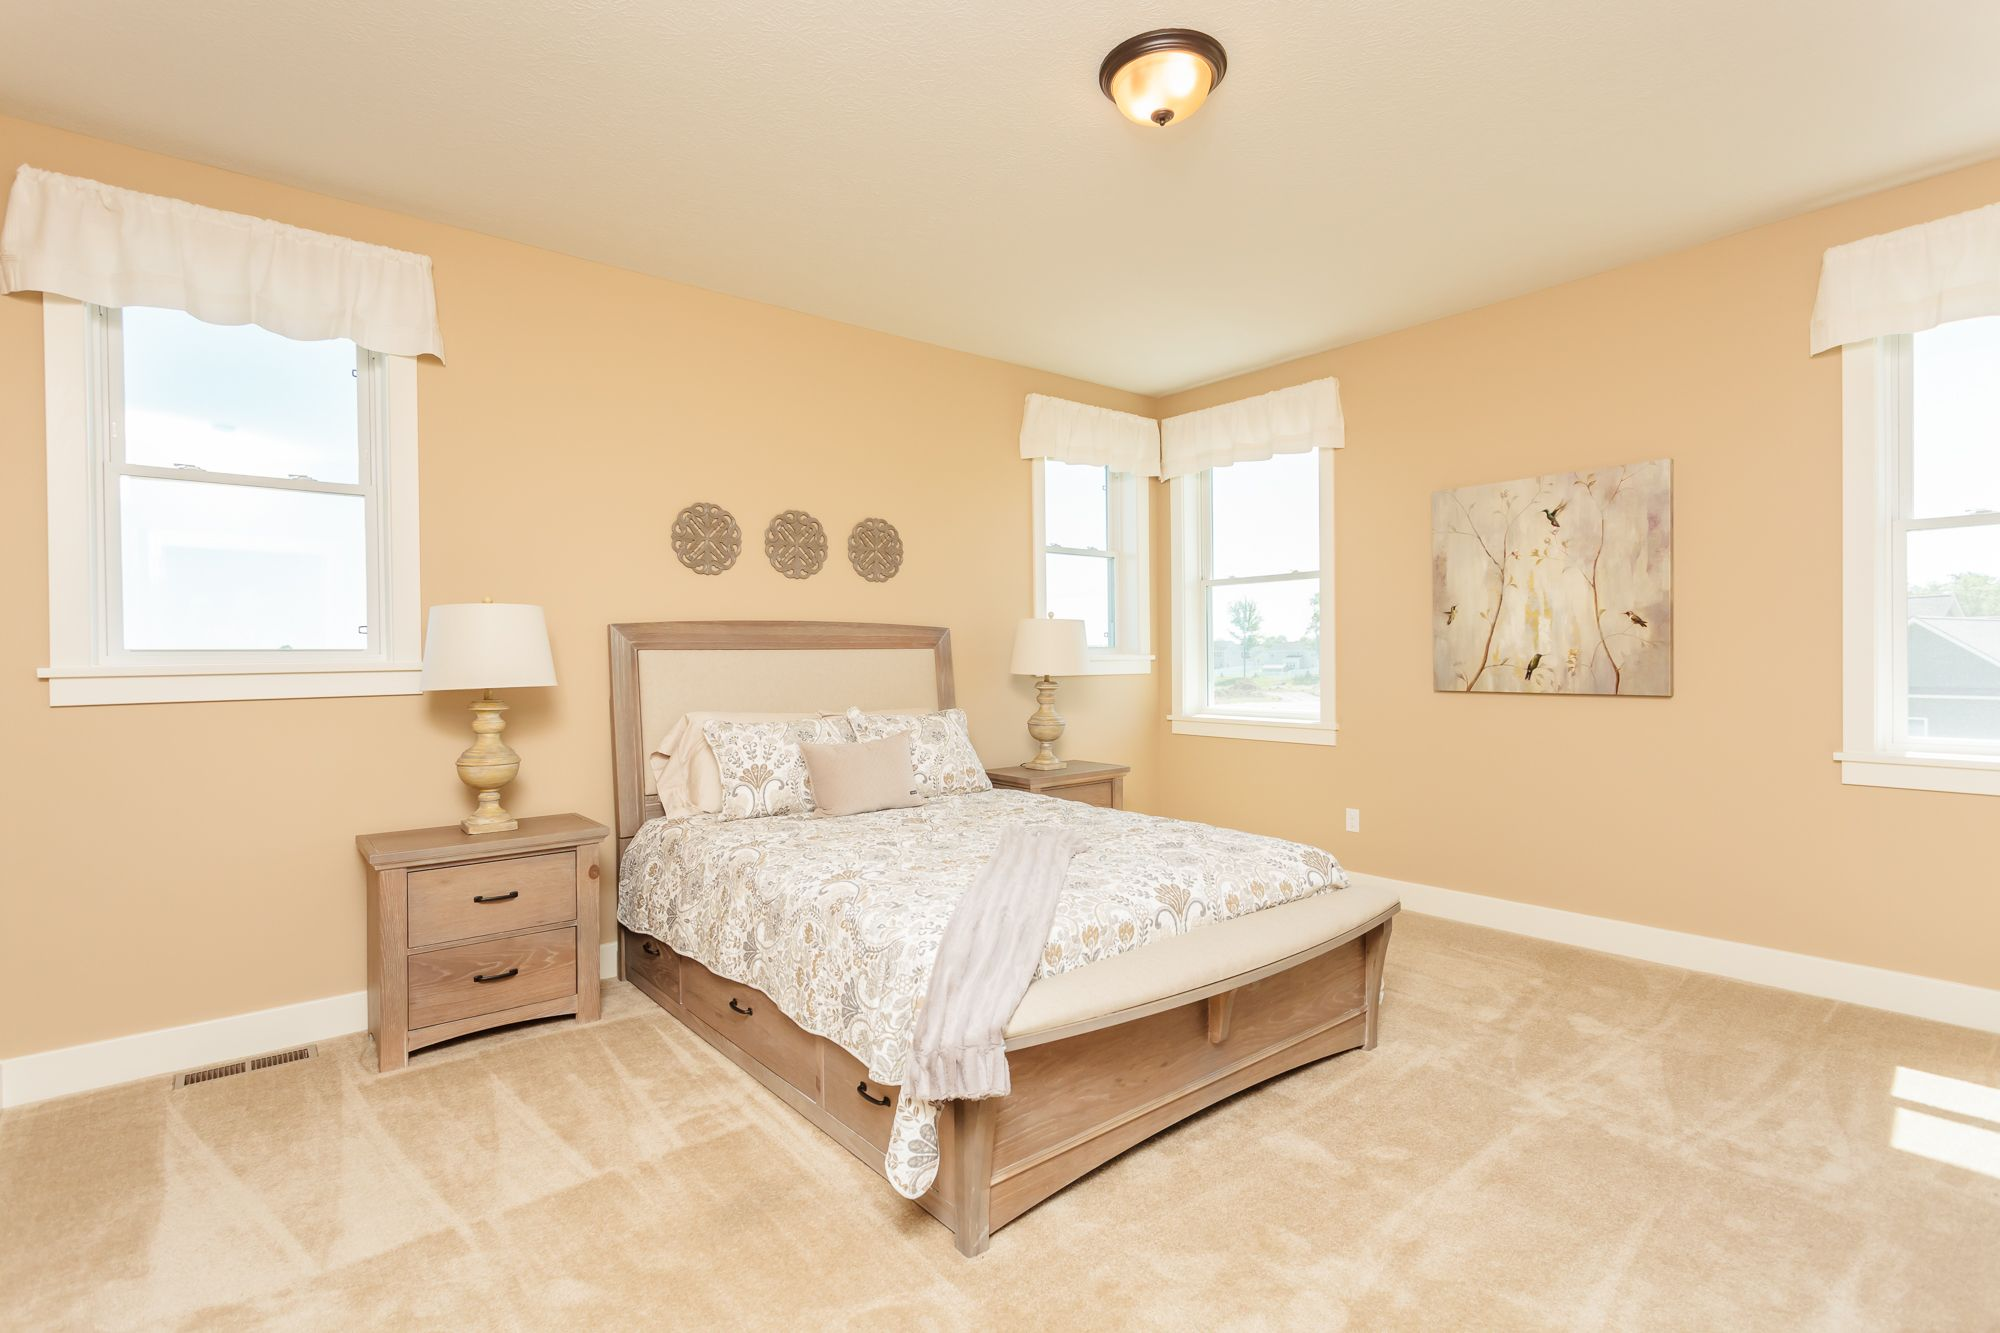 Bedroom featured in The Lexington By Riedman Homes in Rochester, NY